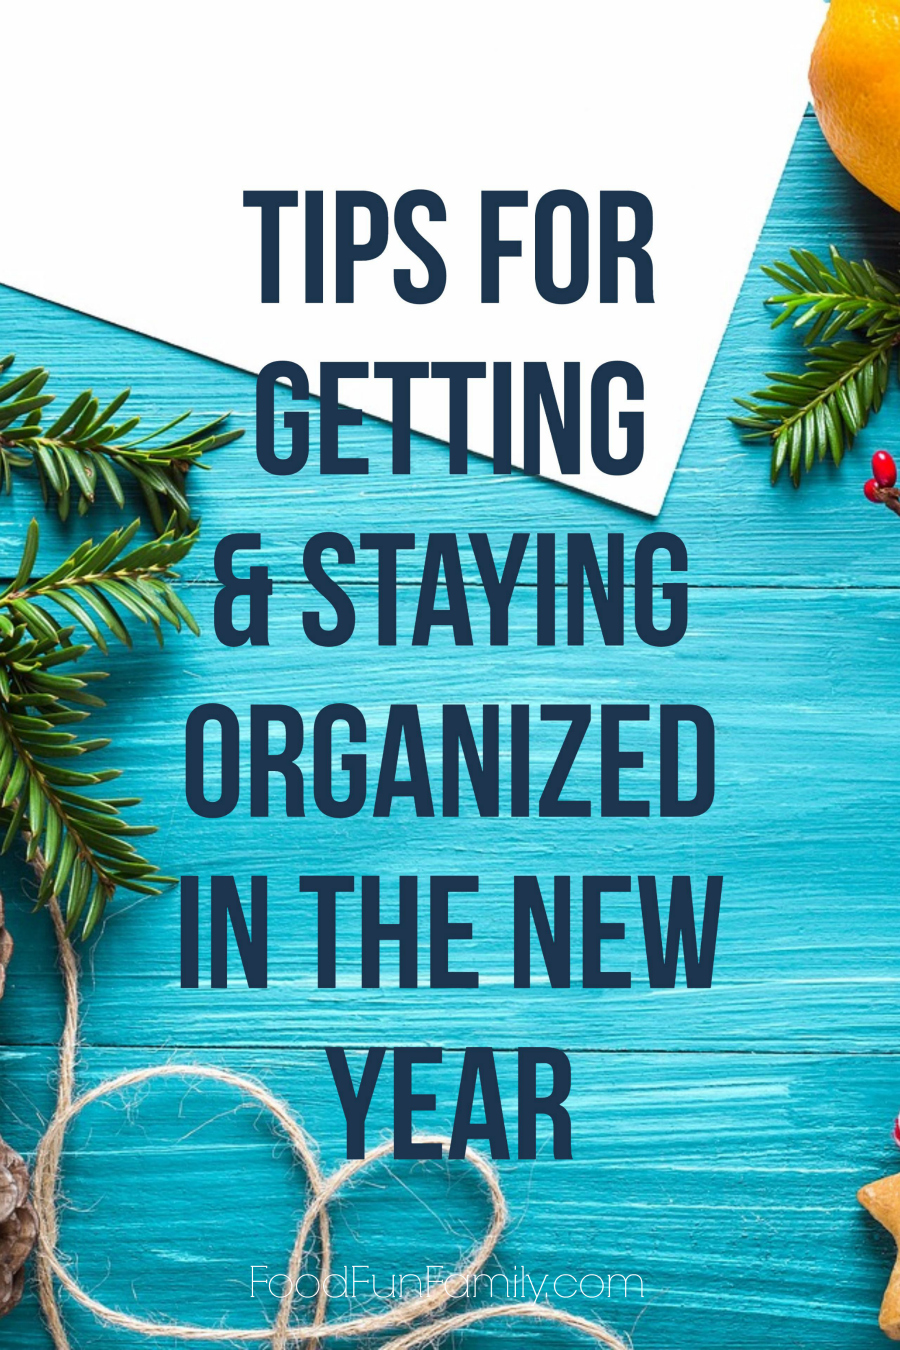 Tips for Getting & Staying Organized in the New Year (and all year long!) from Food Fun Family